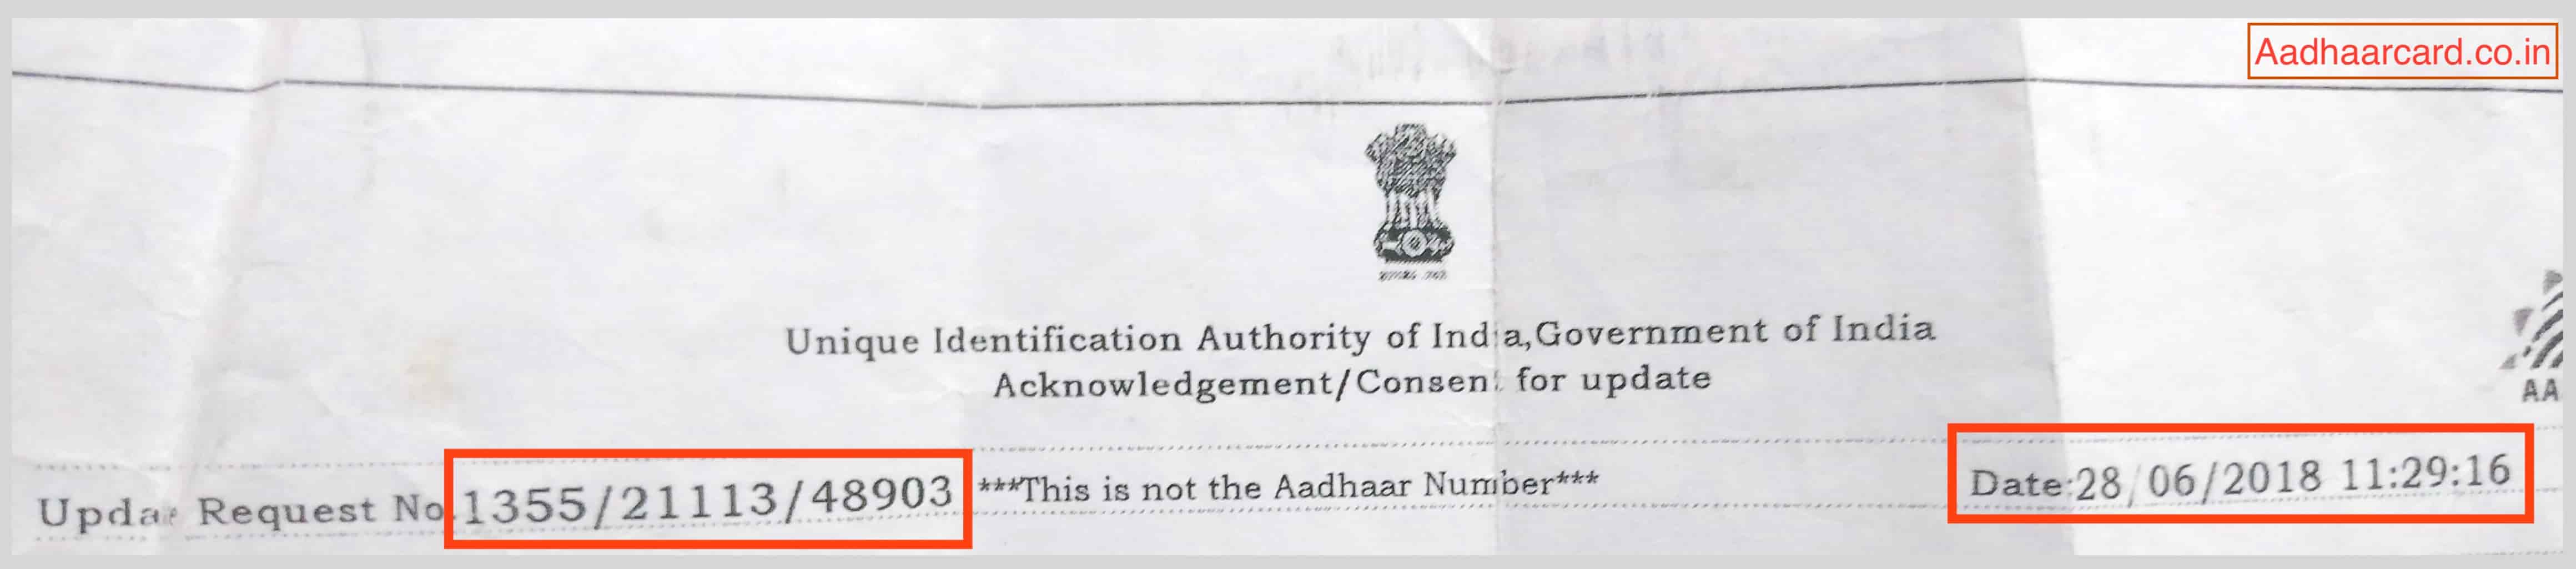 Aadhaar Enrollment Number and Date Time in Acknowledgement Slip